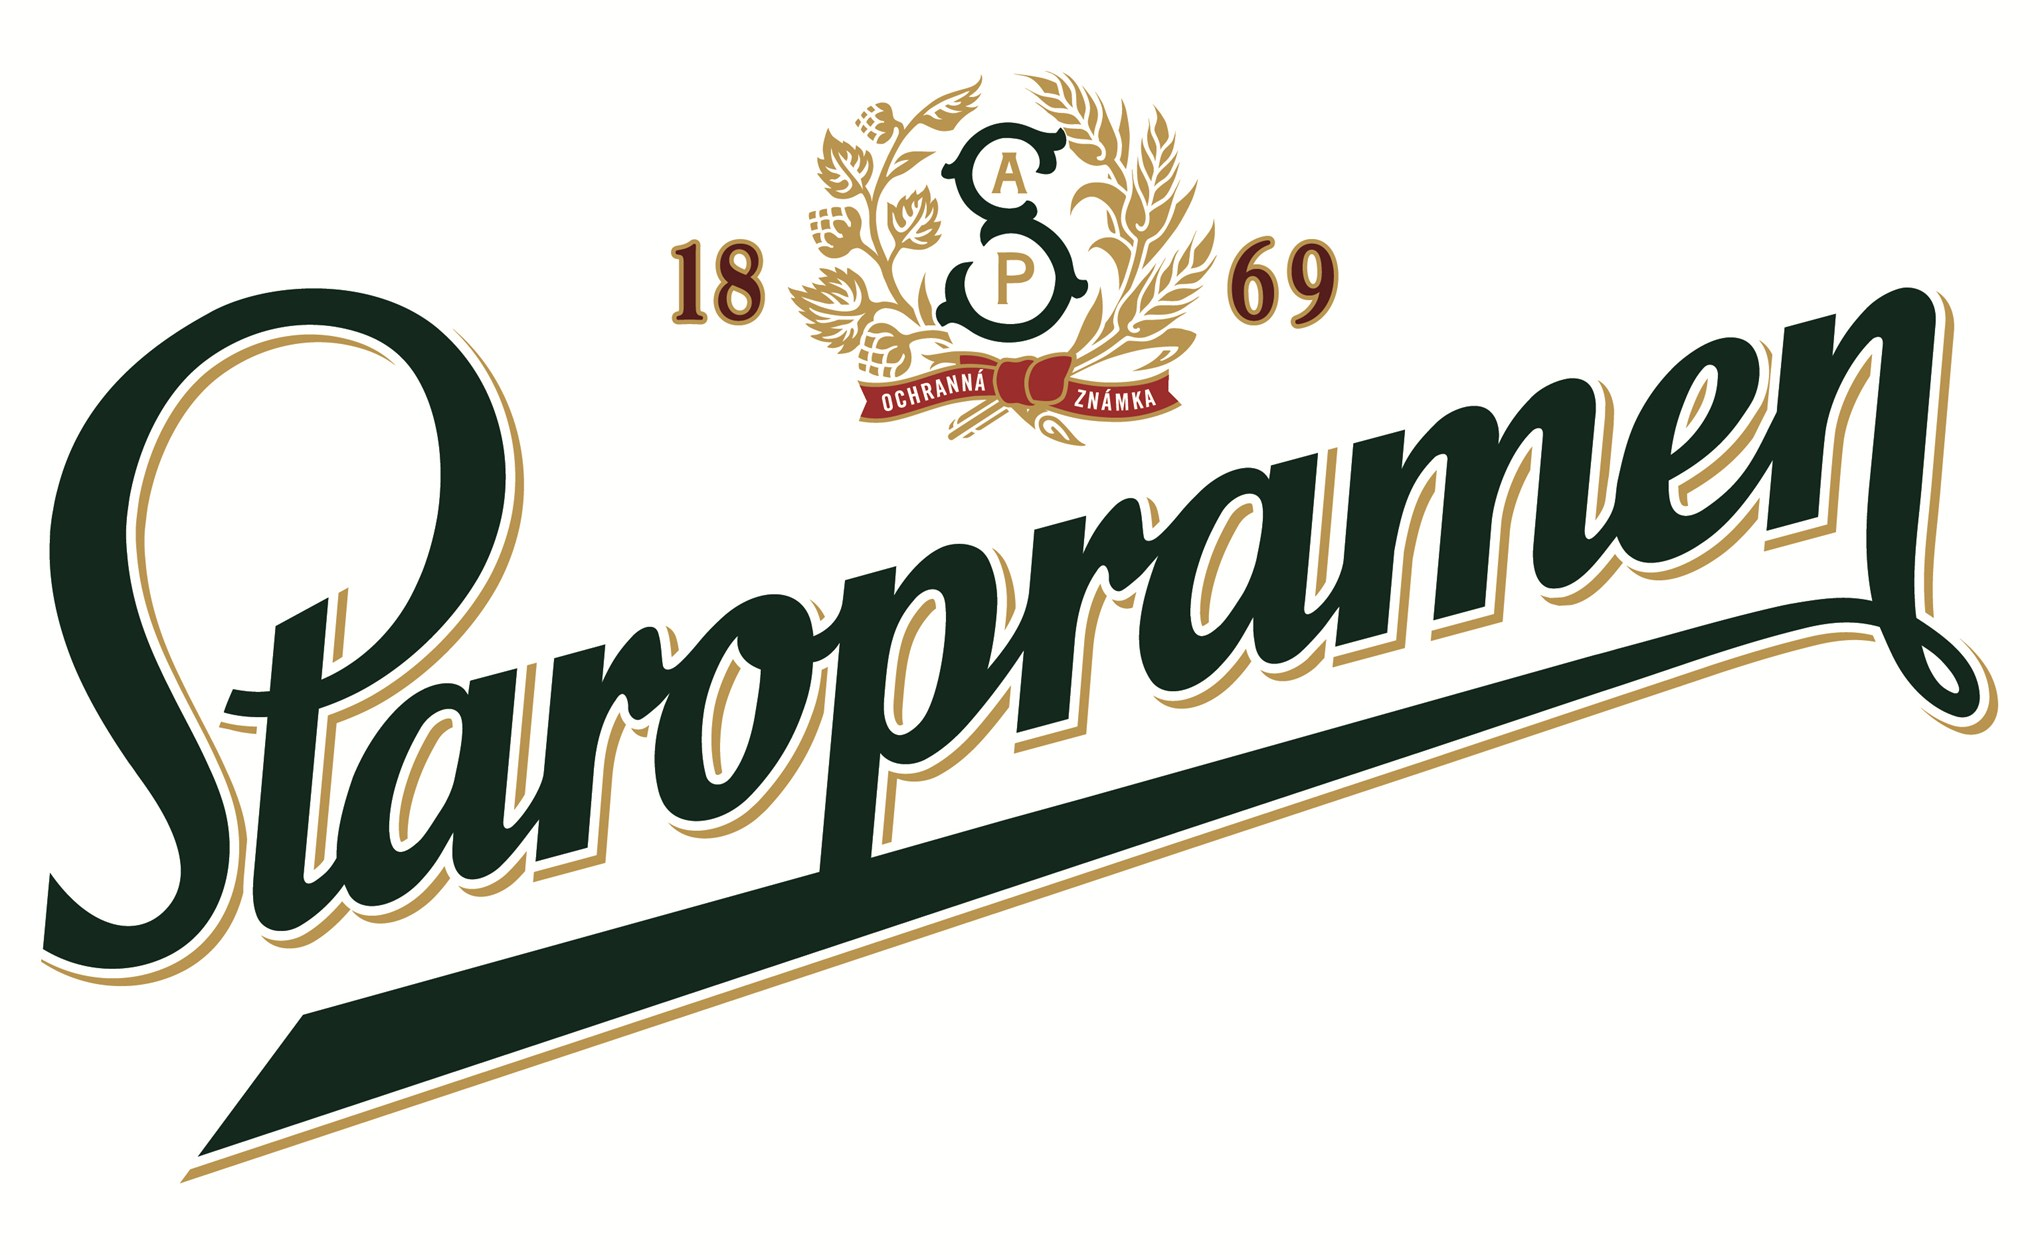 Carlsberg UK Ltd Staropramen